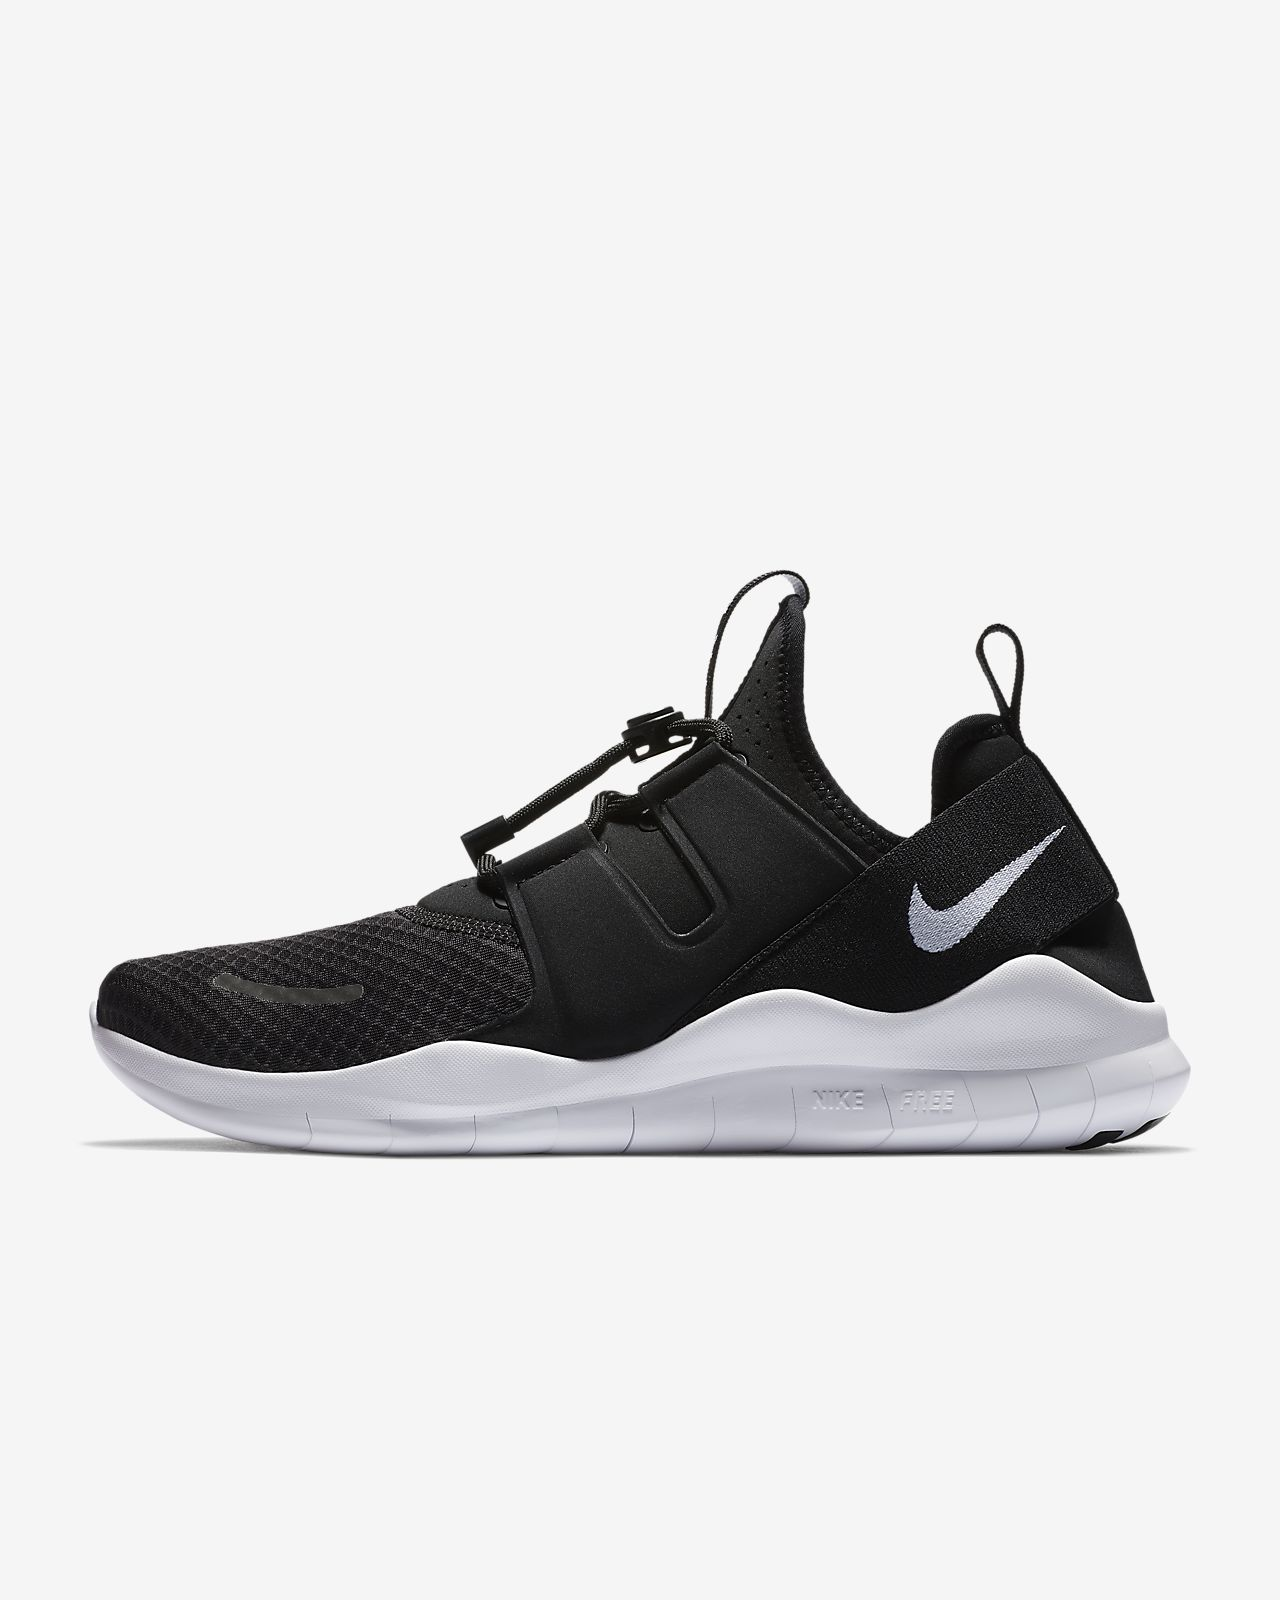 Hombres 7003e Rn Clearance Ef4ec Free Nike 0tw0Z4